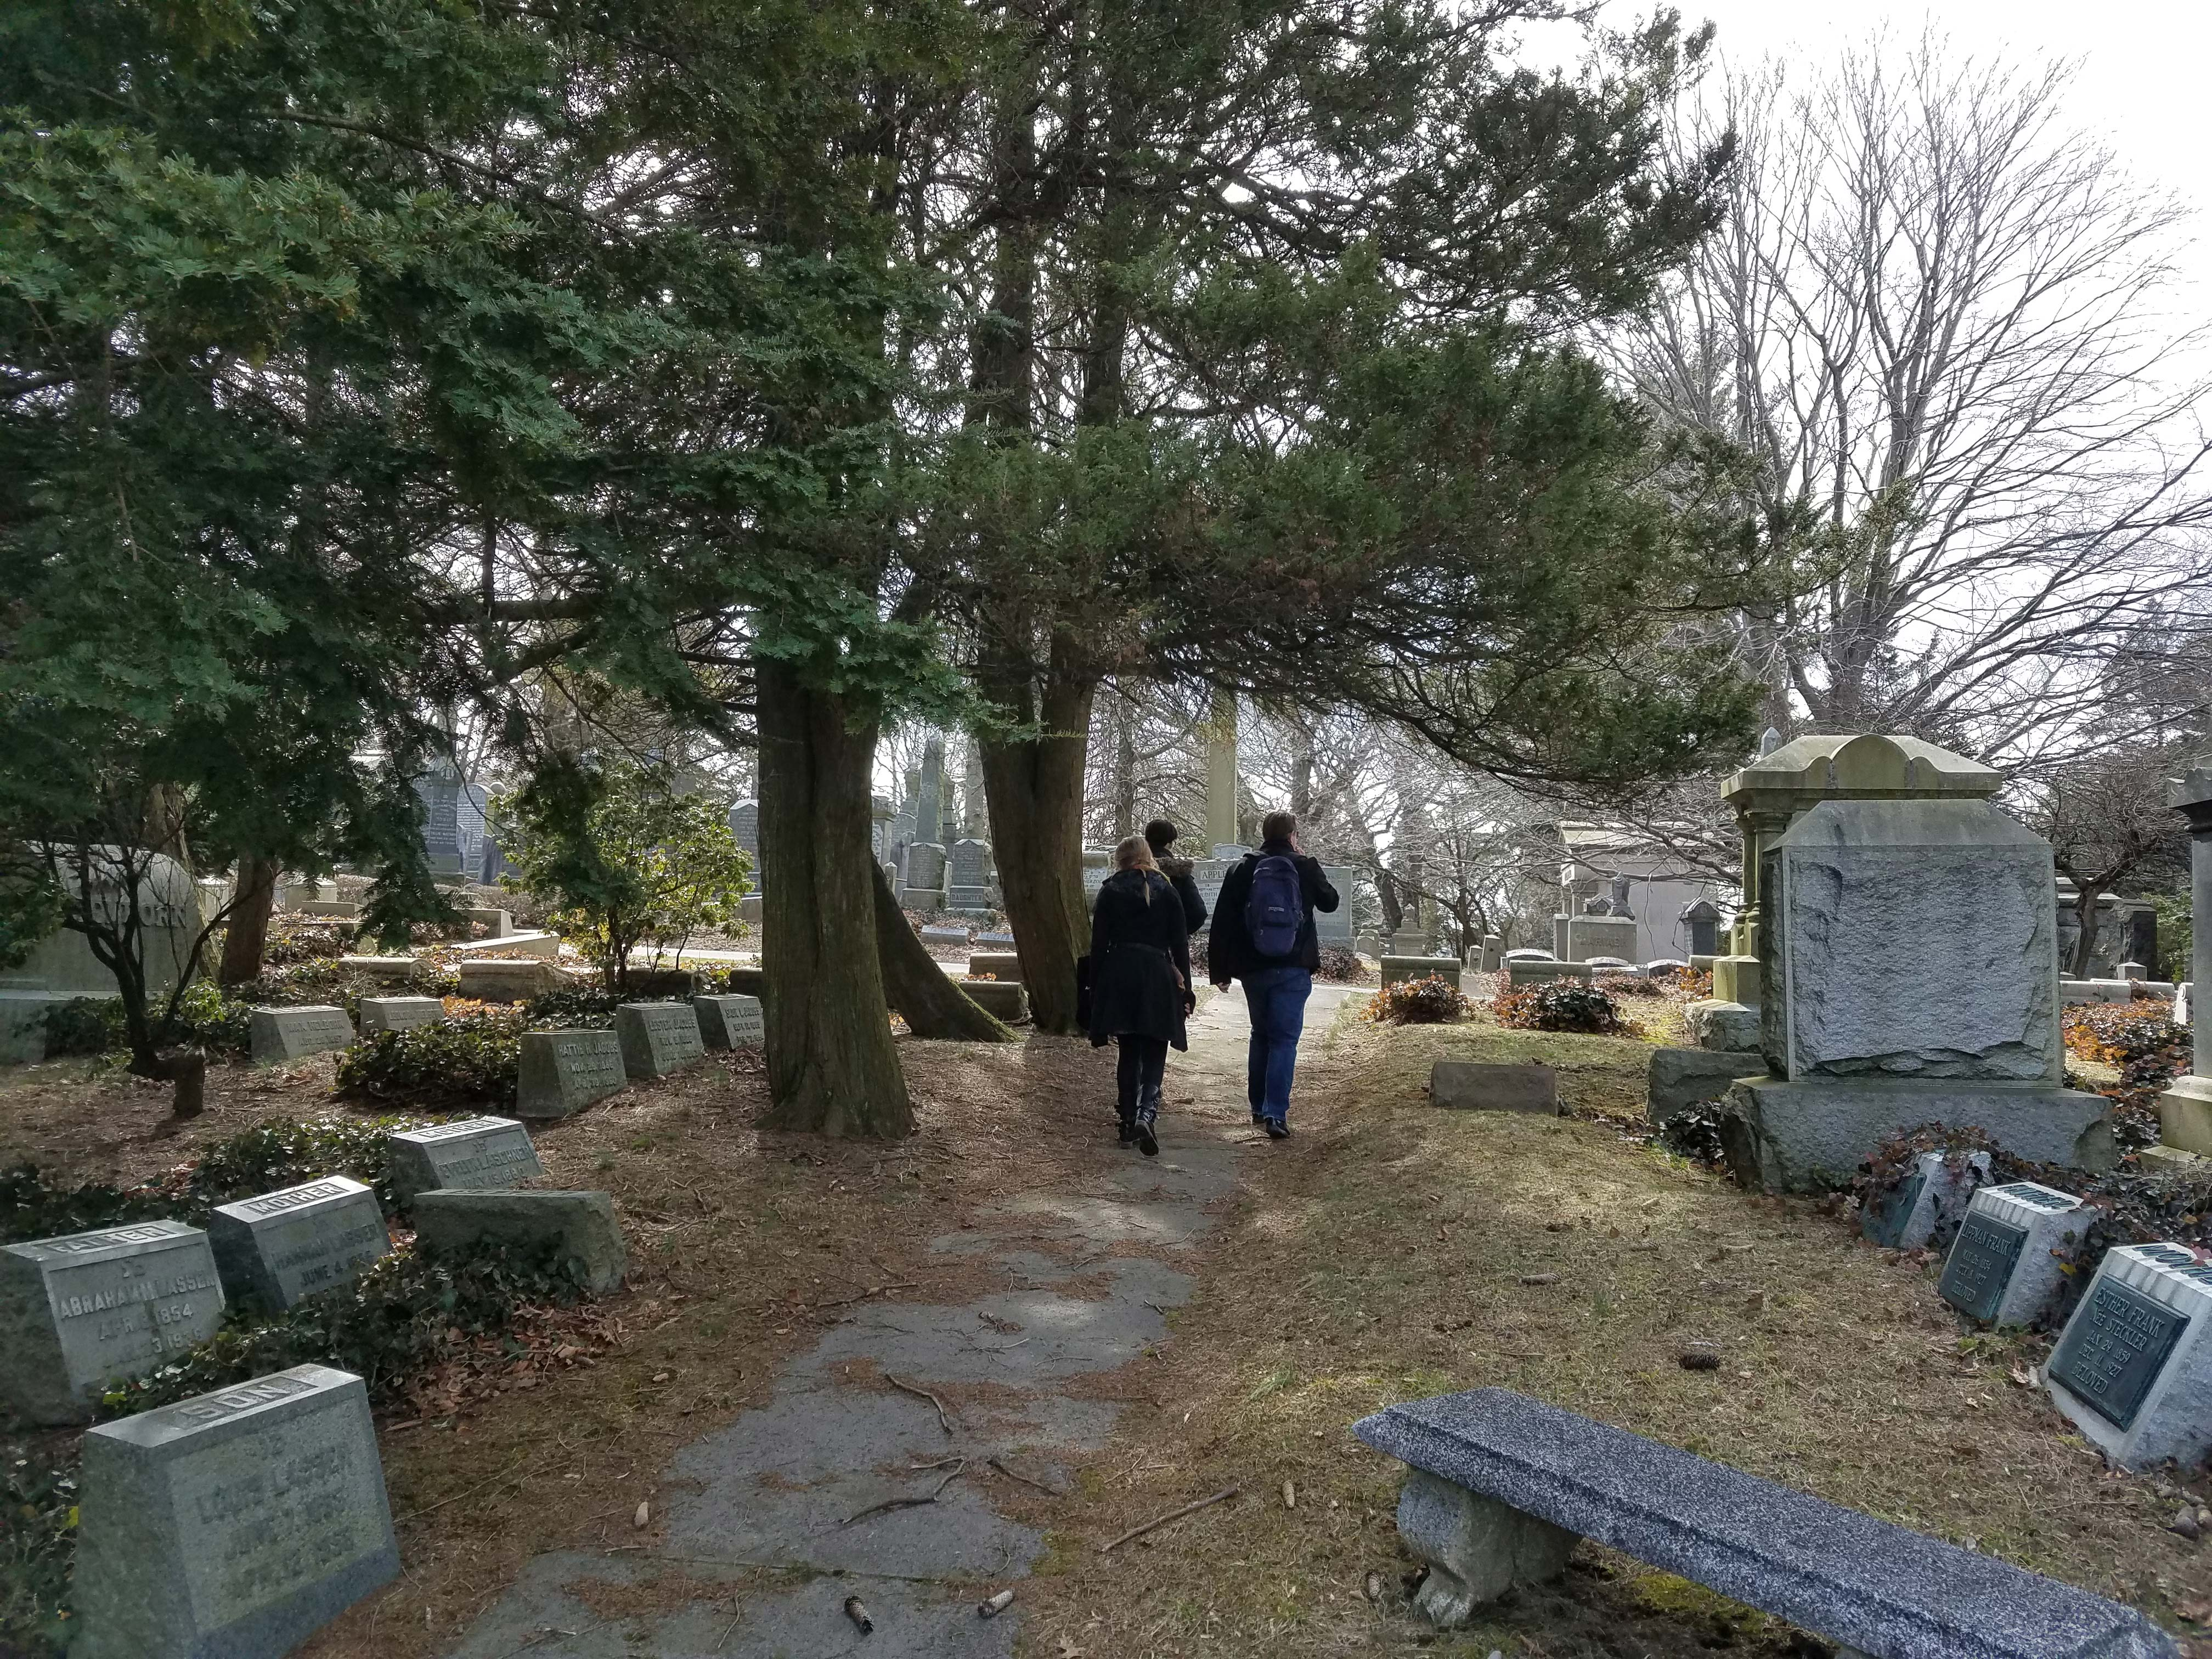 A picture in a cemetary in early afternoon of three people walking into the distance on a path past some trees.